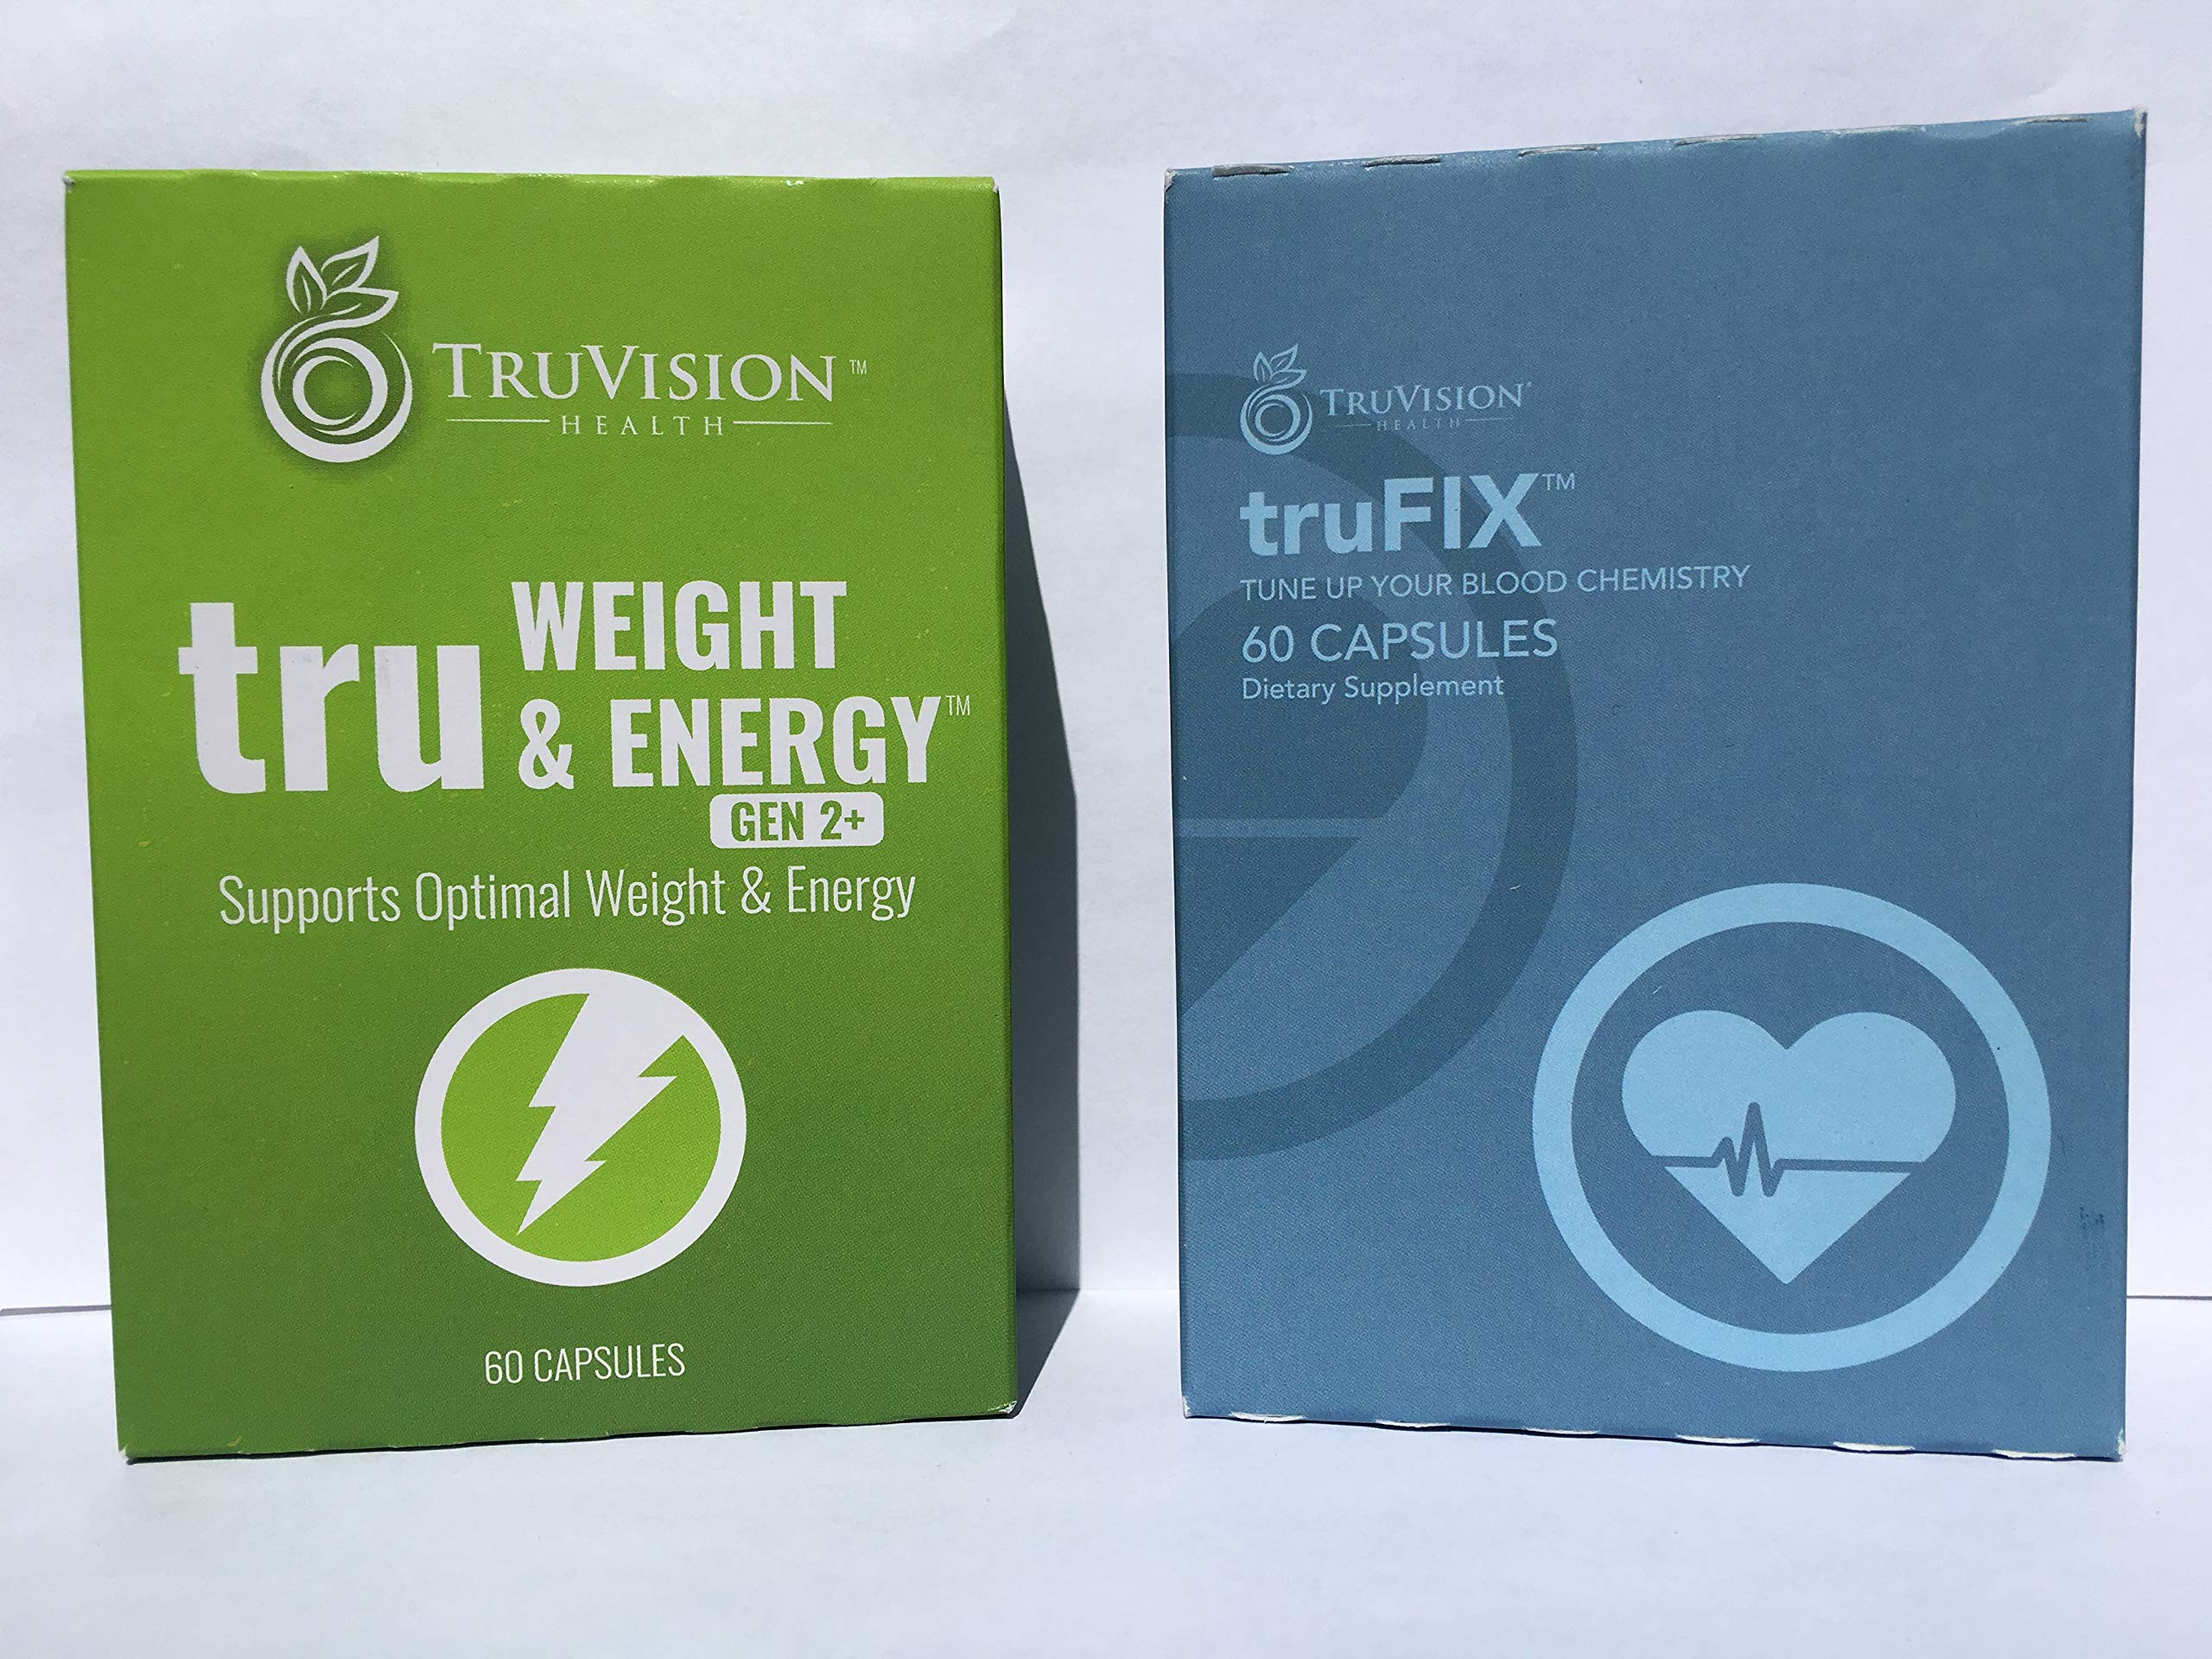 TRUVISION HEALTH ~ GENERATION 2 ~TRUFIX ~ 30 DAY SUPPLY ~ (120) by TruVision by TRUVISION HEALTH